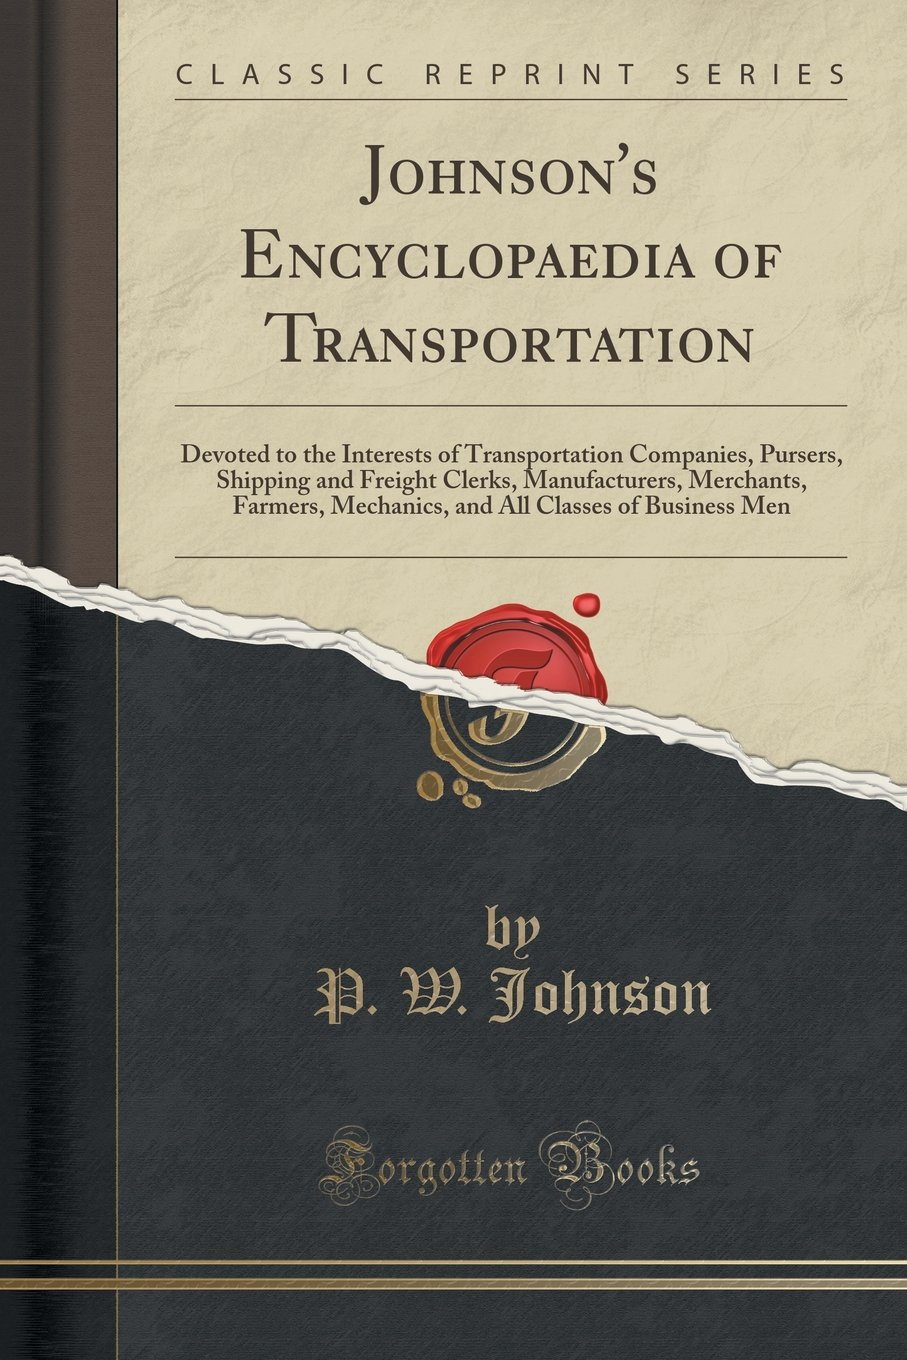 Read Online Johnson's Encyclopaedia of Transportation: Devoted to the Interests of Transportation Companies, Pursers, Shipping and Freight Clerks, Manufacturers, ... All Classes of Business Men (Classic Reprint) pdf